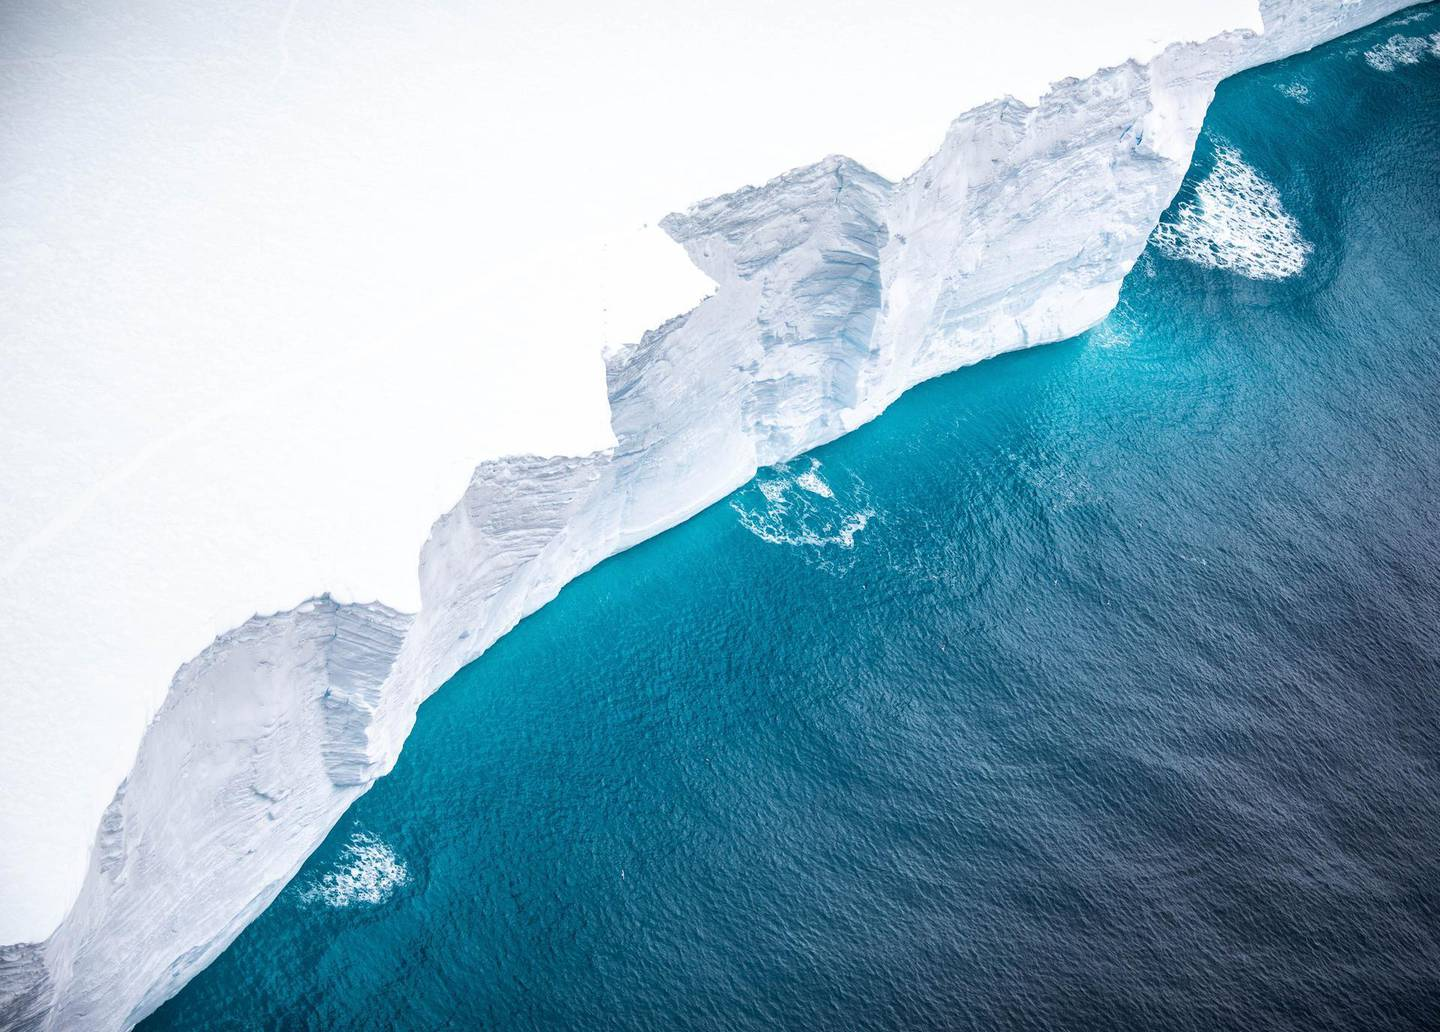 """A handout photograph released by the UK Ministry of Defence (MOD) on December 5, 2020 shows one of the largest recorded icebergs, the 4,200-sq-km block known as A68a, floating near the island of South Georgia, South Atlantic and revealing the steep vertical sides, approximately 30m high.   The image, taken from an A400M Atlas, Royal Air Force aircraft shows the first photographic evidence of this gigantic mass of ice that has transited from Antartica.  - RESTRICTED TO EDITORIAL USE - MANDATORY CREDIT  """" AFP PHOTO / UK MOD / CROWN COPYRIGHT 2019/ CORPORAL PHIL DYE""""  -  NO MARKETING NO ADVERTISING CAMPAIGNS   -   DISTRIBUTED AS A SERVICE TO CLIENTS  -  NO ARCHIVE - TO BE USED WITHIN 2 DAYS FROM DECEMBER 5 (48 HOURS), EXCEPT FOR MAGAZINES WHICH CAN PRINT THE PICTURE WHEN FIRST REPORTING ON THE EVENT  / AFP / MOD / Handout / RESTRICTED TO EDITORIAL USE - MANDATORY CREDIT  """" AFP PHOTO / UK MOD / CROWN COPYRIGHT 2019/ CORPORAL PHIL DYE""""  -  NO MARKETING NO ADVERTISING CAMPAIGNS   -   DISTRIBUTED AS A SERVICE TO CLIENTS  -  NO ARCHIVE - TO BE USED WITHIN 2 DAYS FROM DECEMBER 5 (48 HOURS), EXCEPT FOR MAGAZINES WHICH CAN PRINT THE PICTURE WHEN FIRST REPORTING ON THE EVENT"""